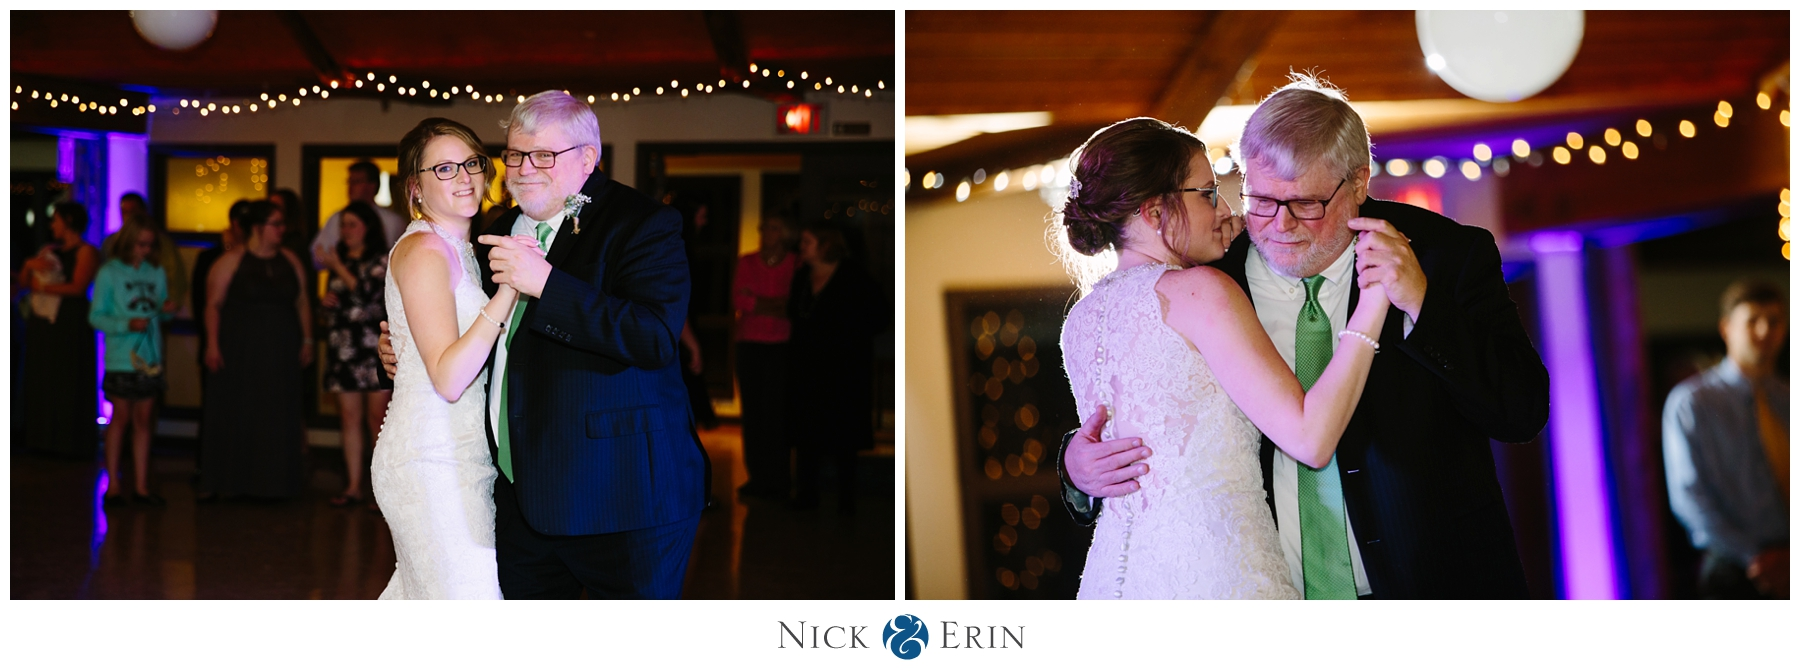 donner_photography_iowa-wedding_katie-chris_0051